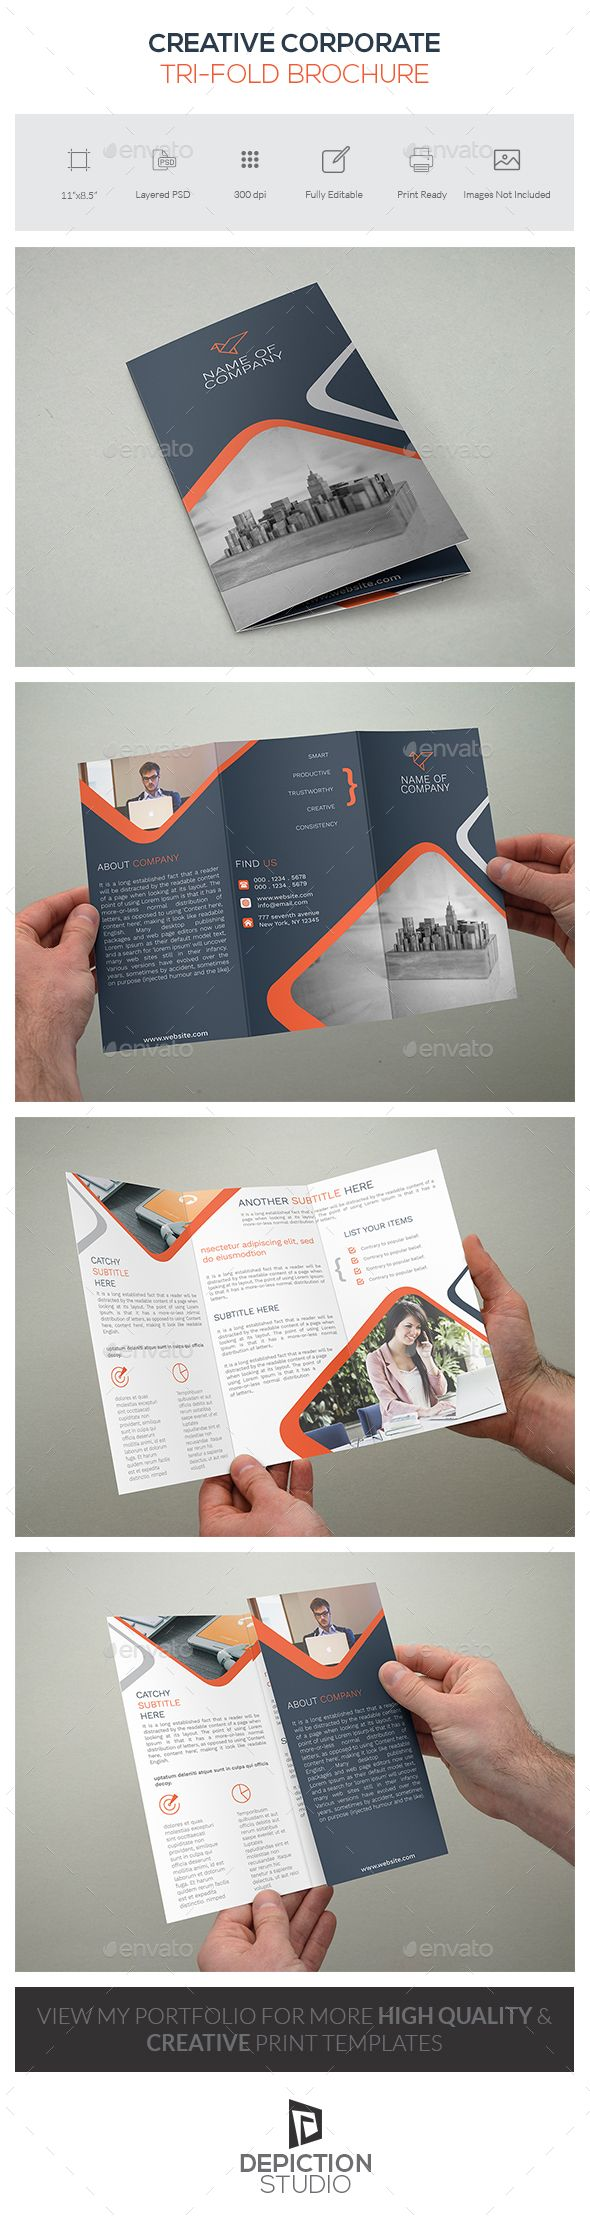 843 best Brochure u0026 Flyer Inspiration images on Pinterest ...